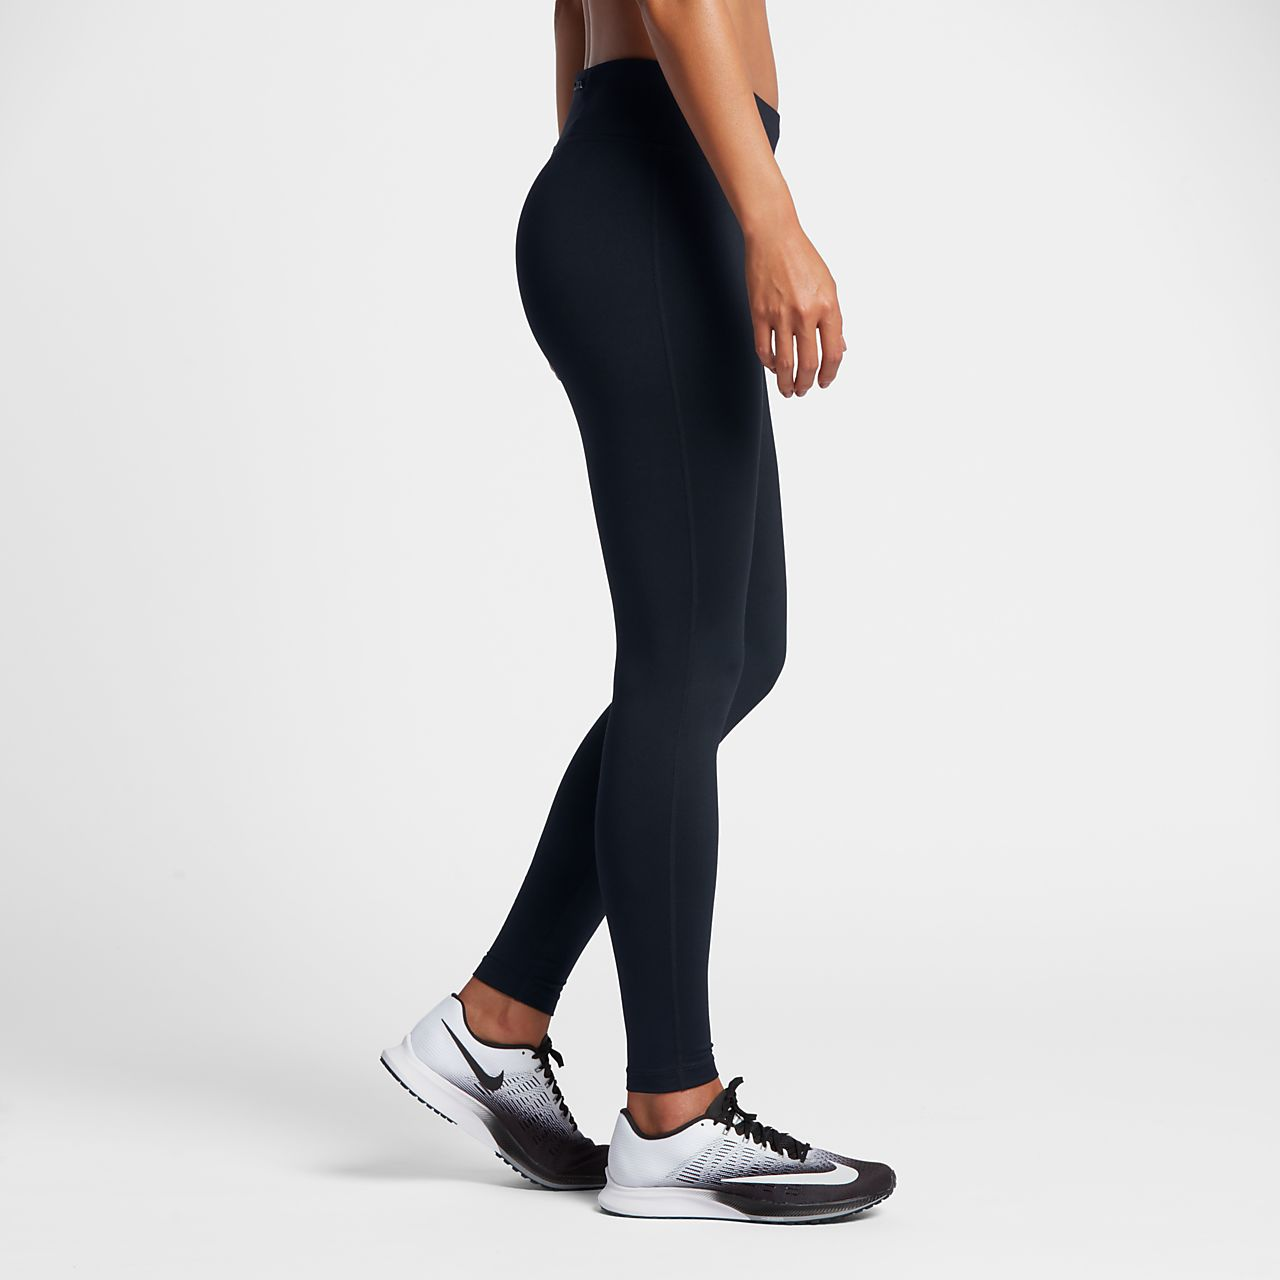 e8465be6abfe6 Nike Essential Women's Mid-Rise Running Tights. Nike.com GB